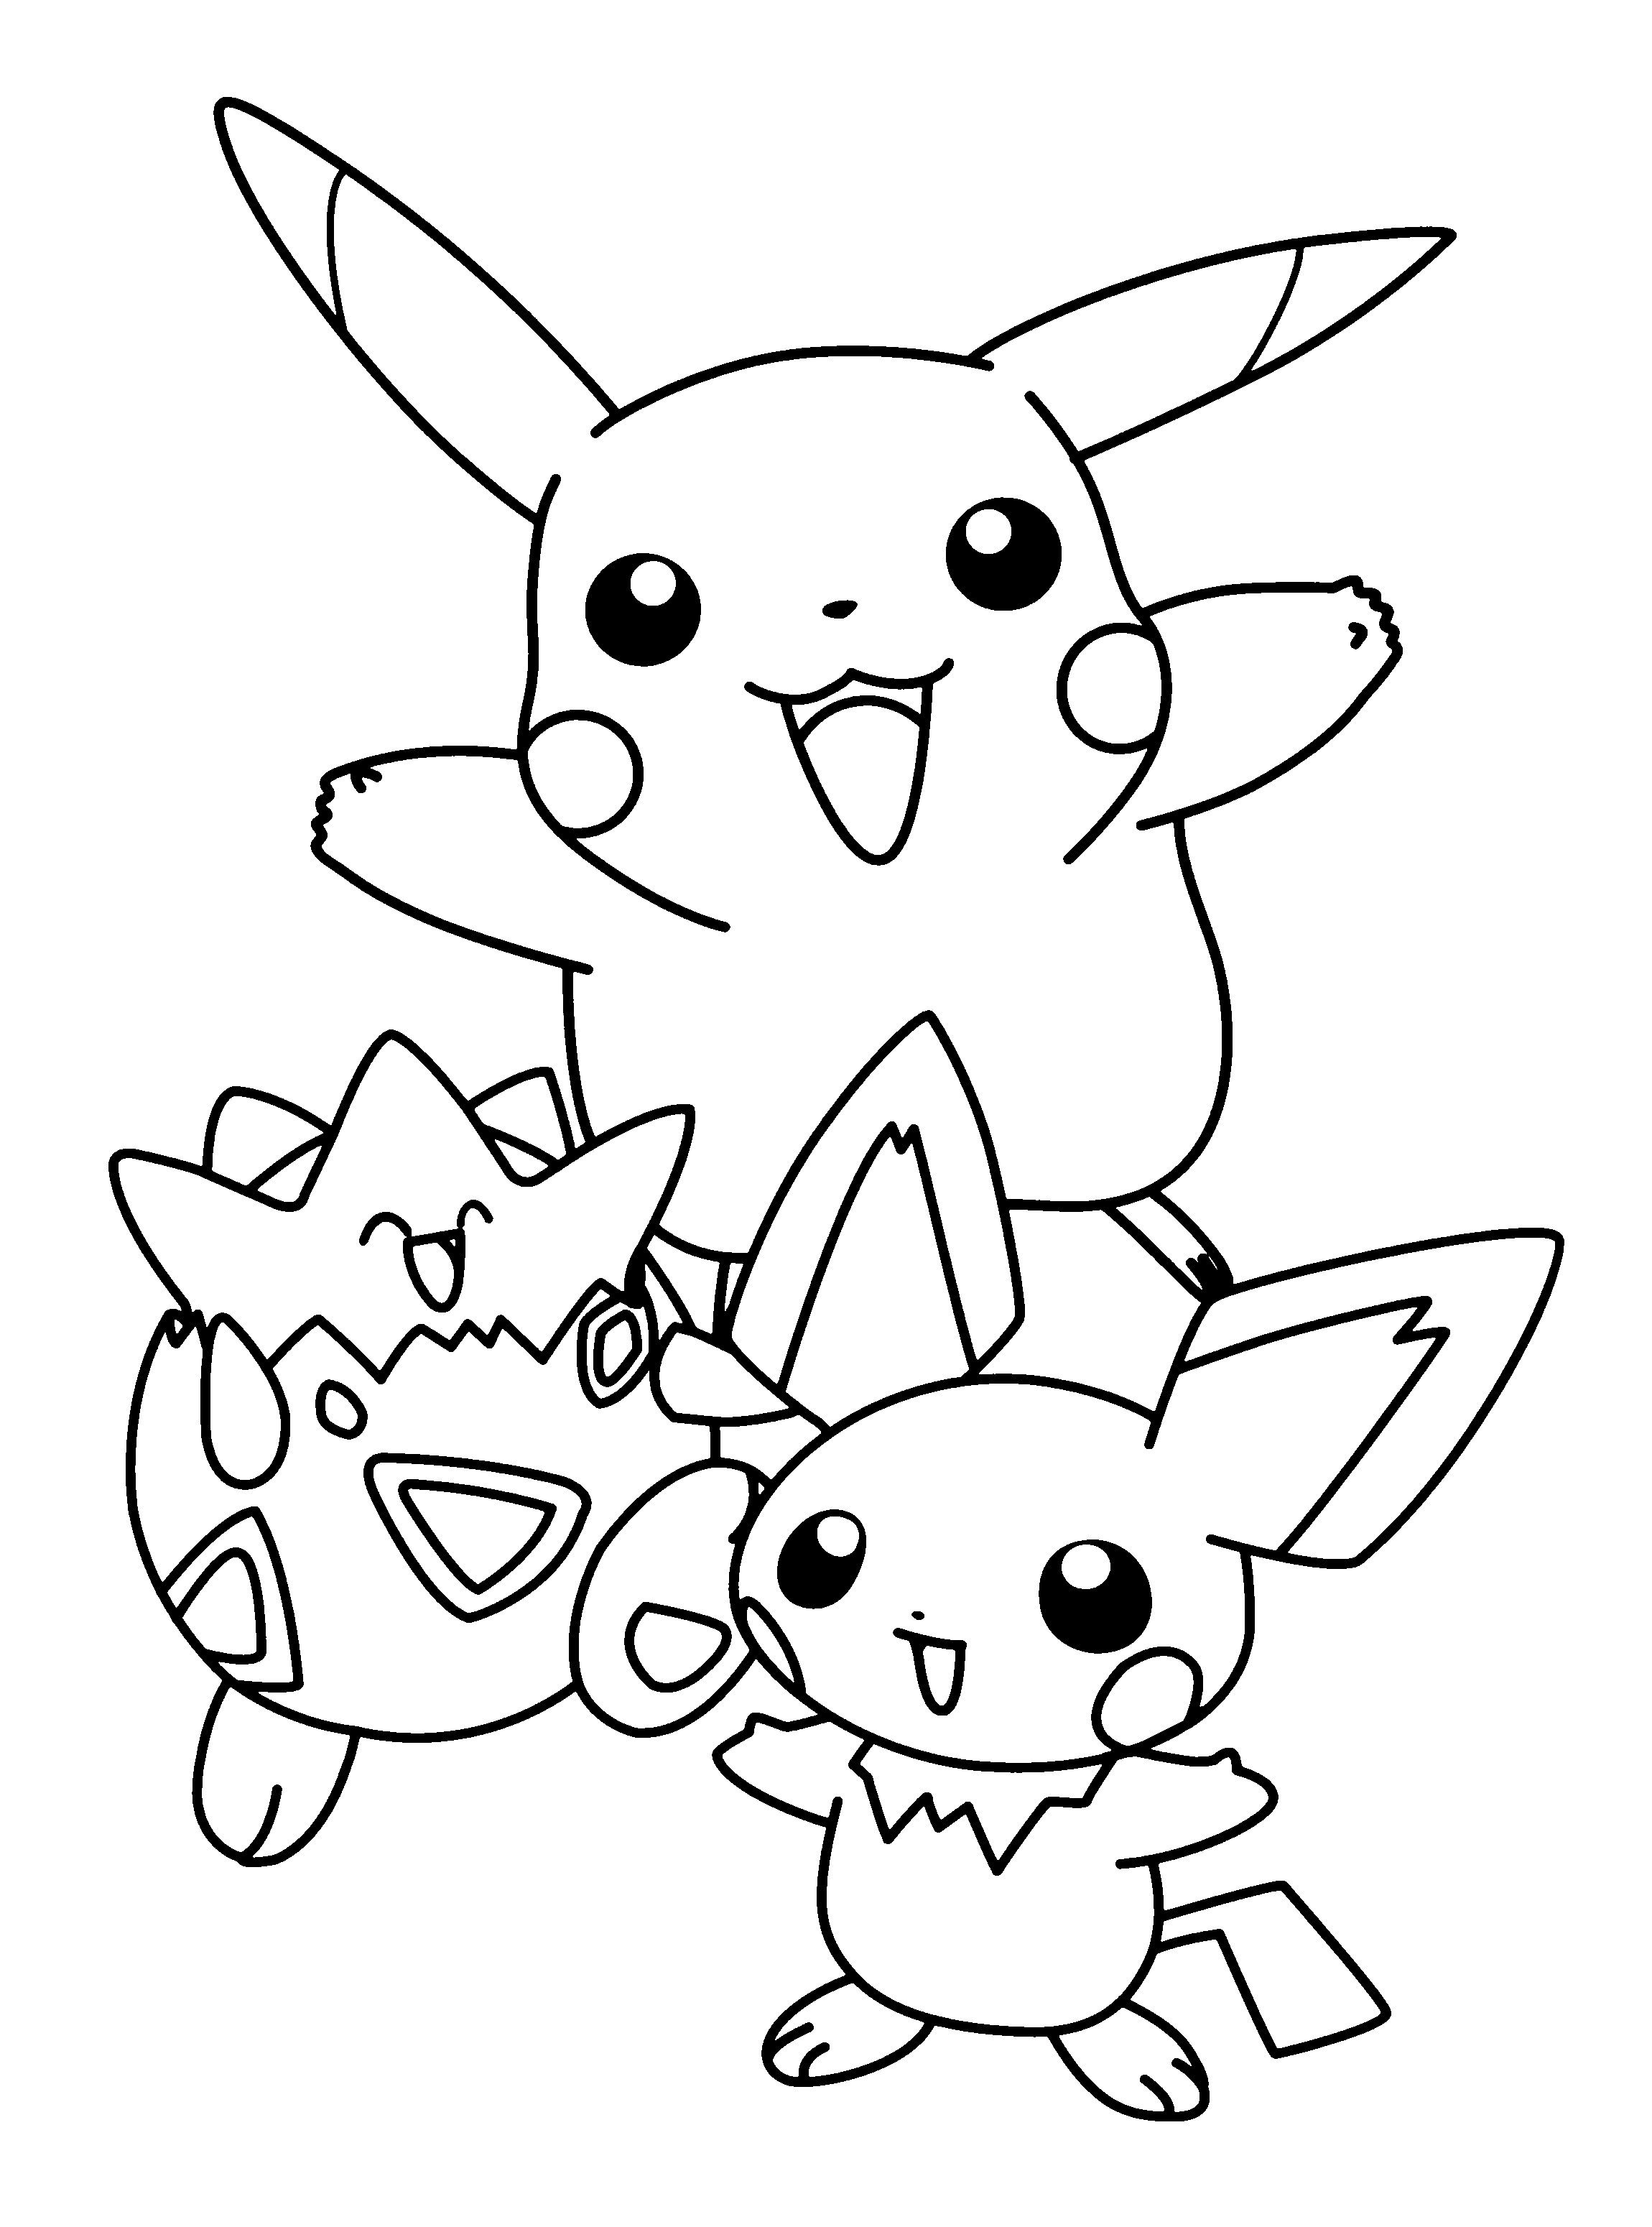 Pikachu Valentine Coloring Page From The Thousands Of Photographs On The Net About Pikachu Valentine Coloring Page Picks The V Malarbocker Malarbok Pokemon